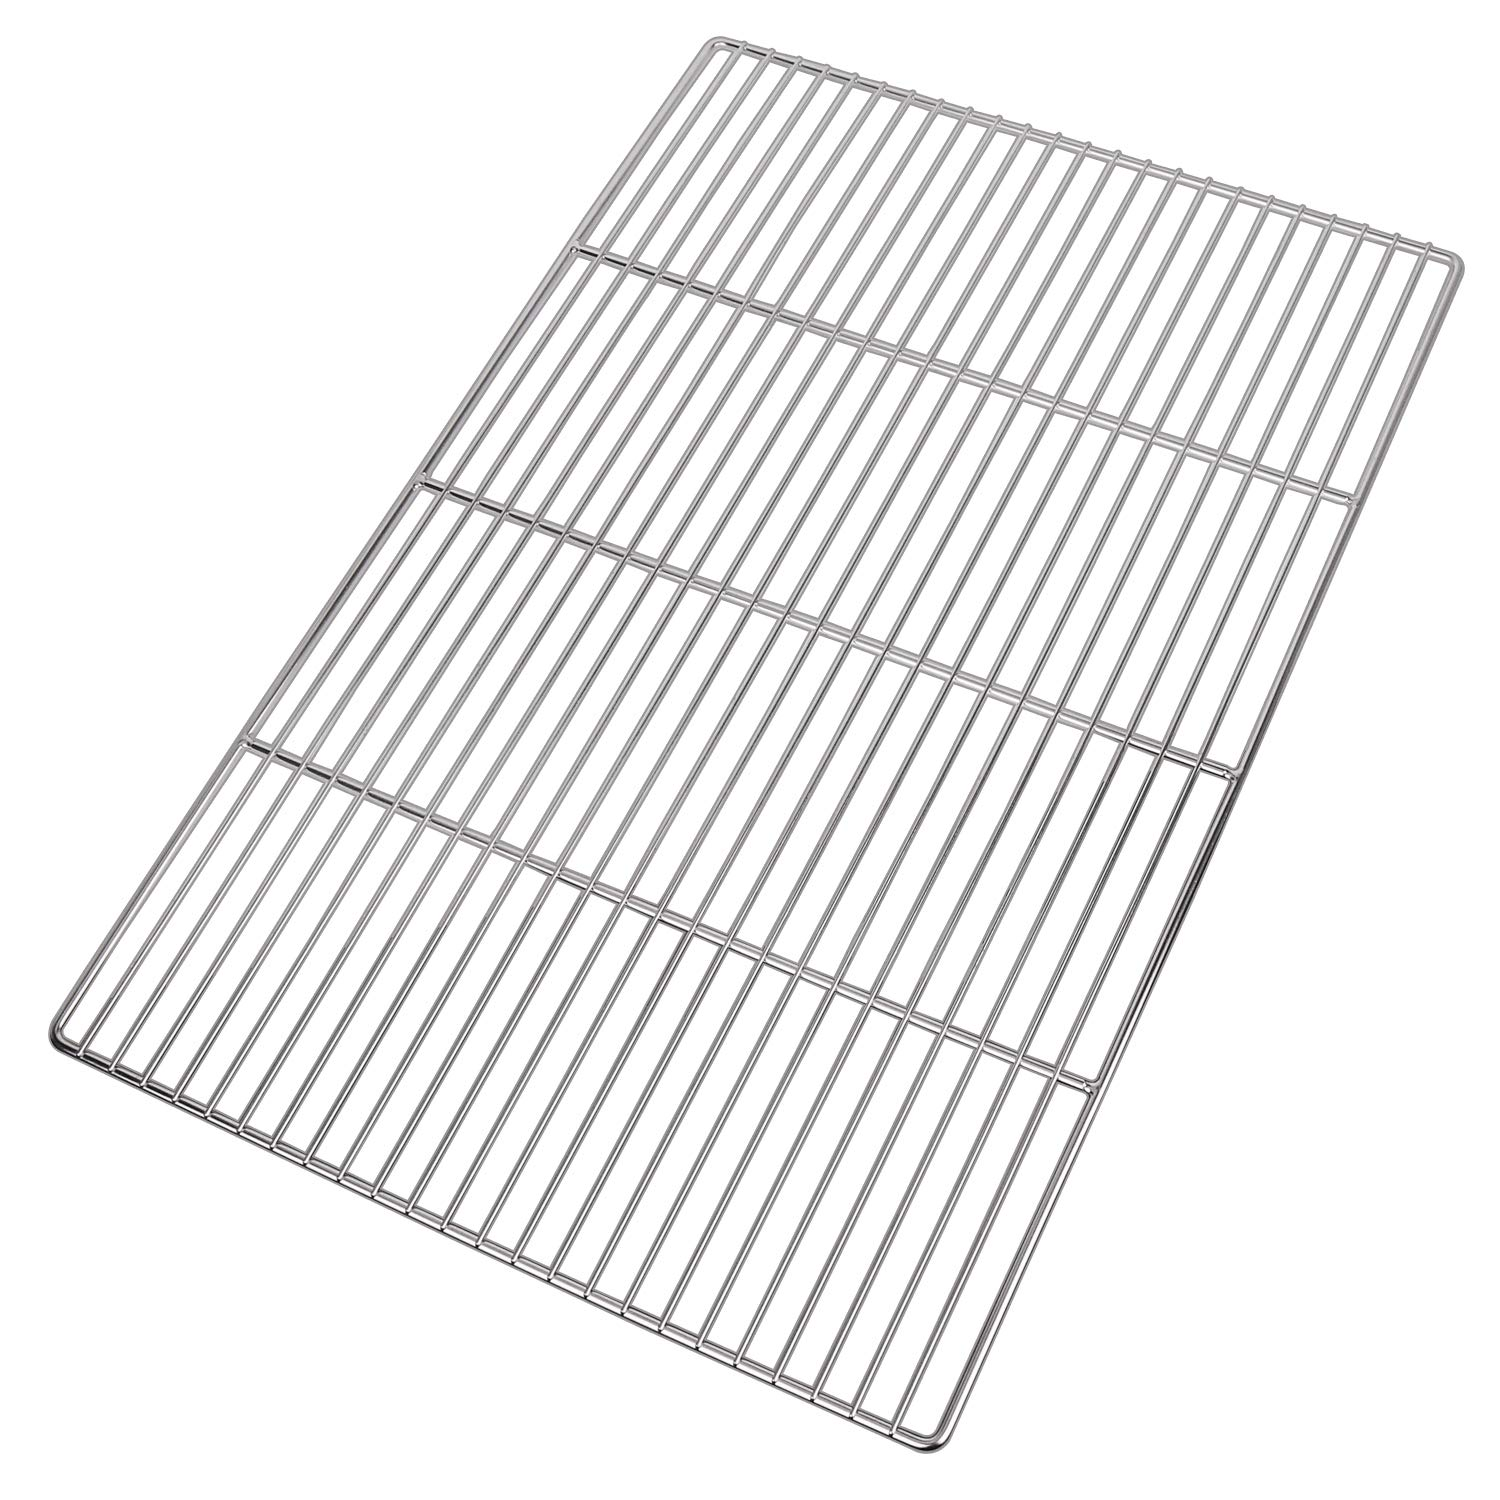 LANEJOY Barbecue Wire Mesh, Stainless Steel BBQ Grill Mat, Multifunction Grill Cooking Grid Grate 2 Pack by LANEJOY